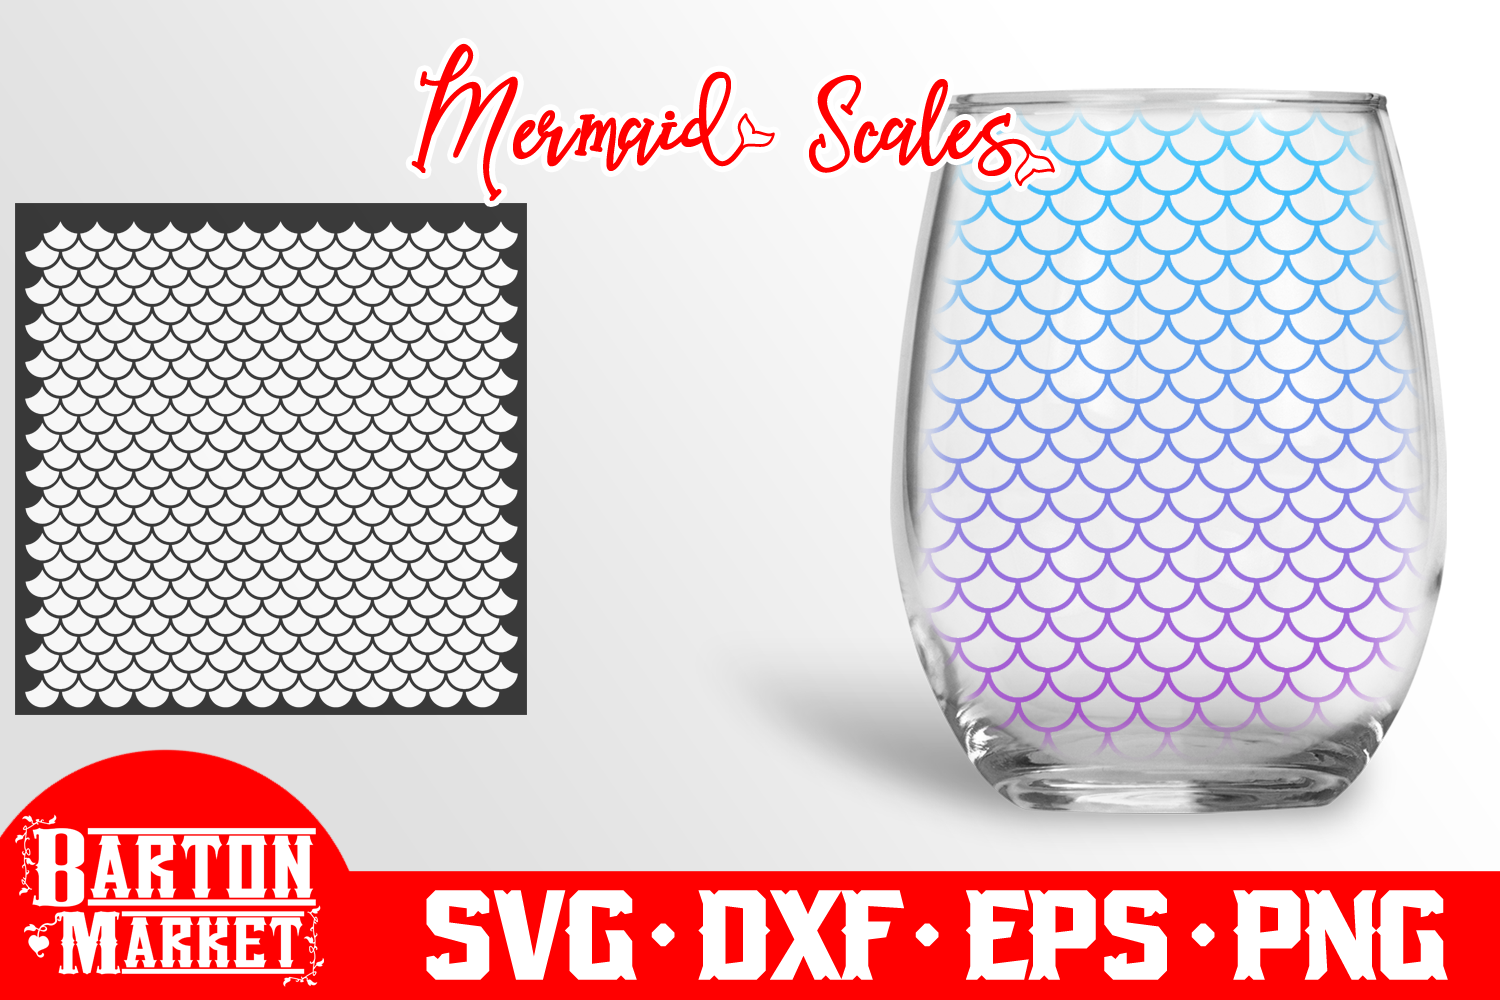 Mermaid Scales SVG DXF EPSPNG example image 1